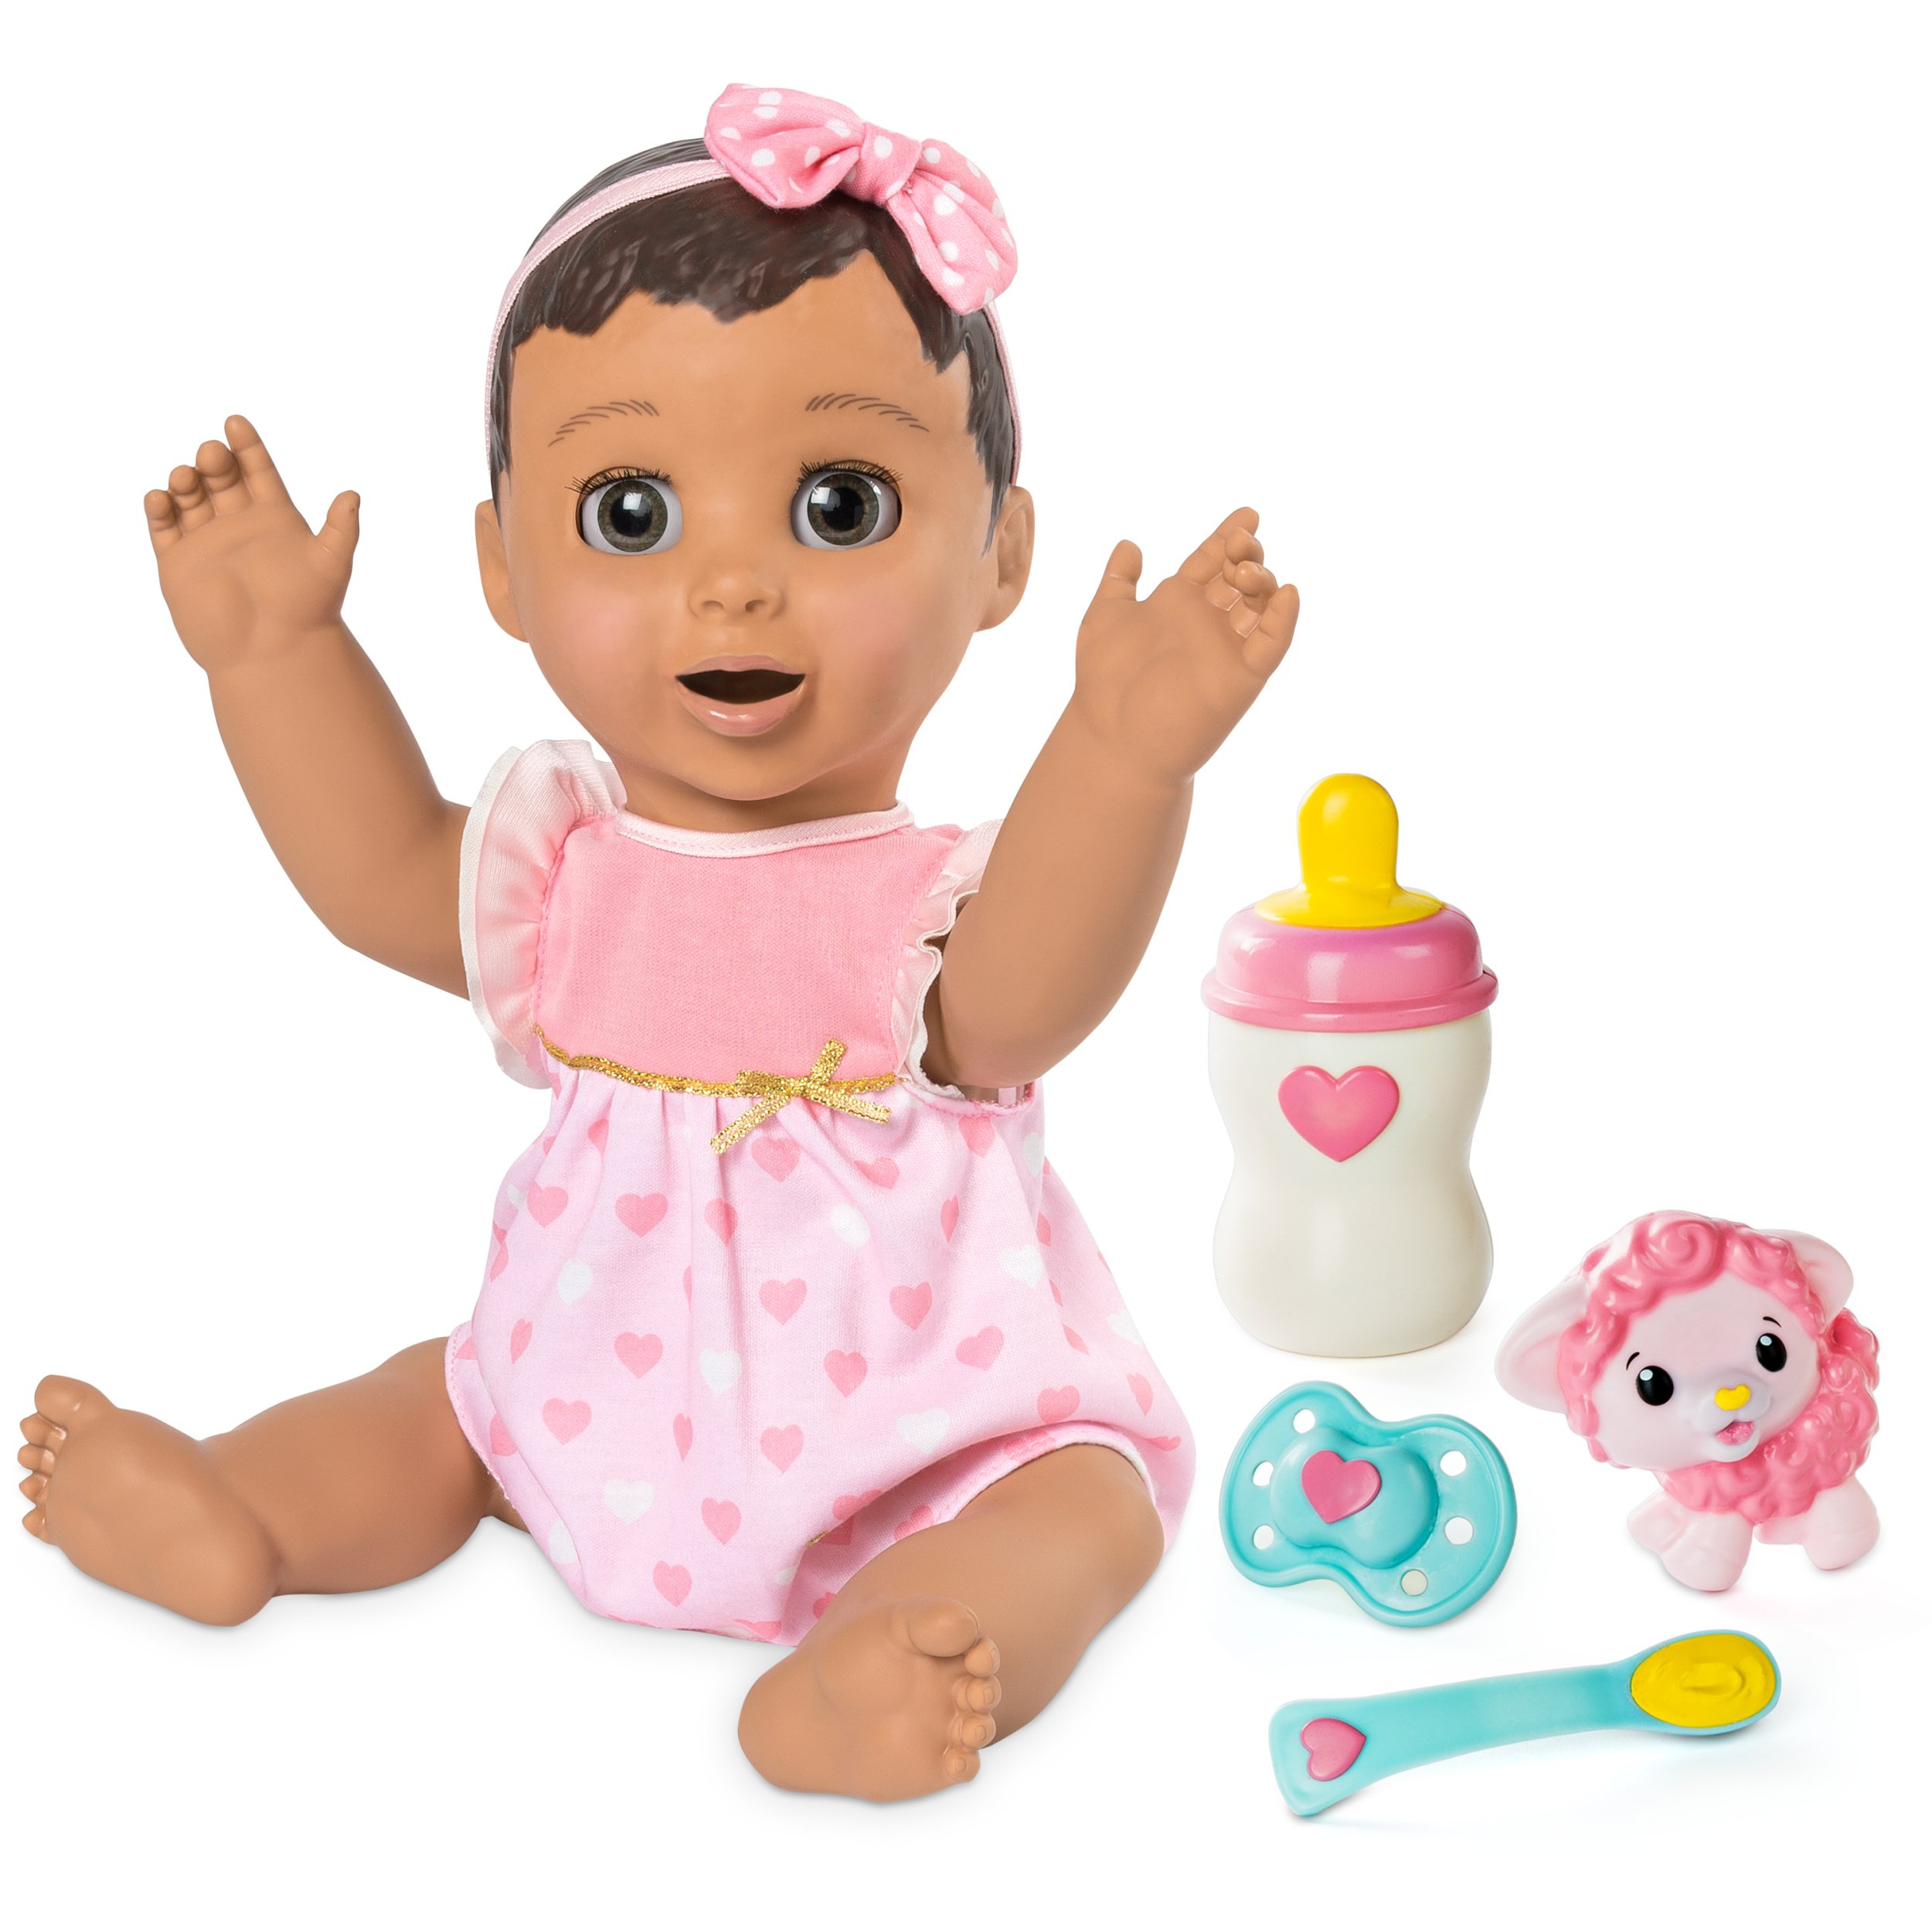 Luvabella Brunette Hair, Responsive Baby Doll with Real Expressions and Movement, for Ages 4 and Up